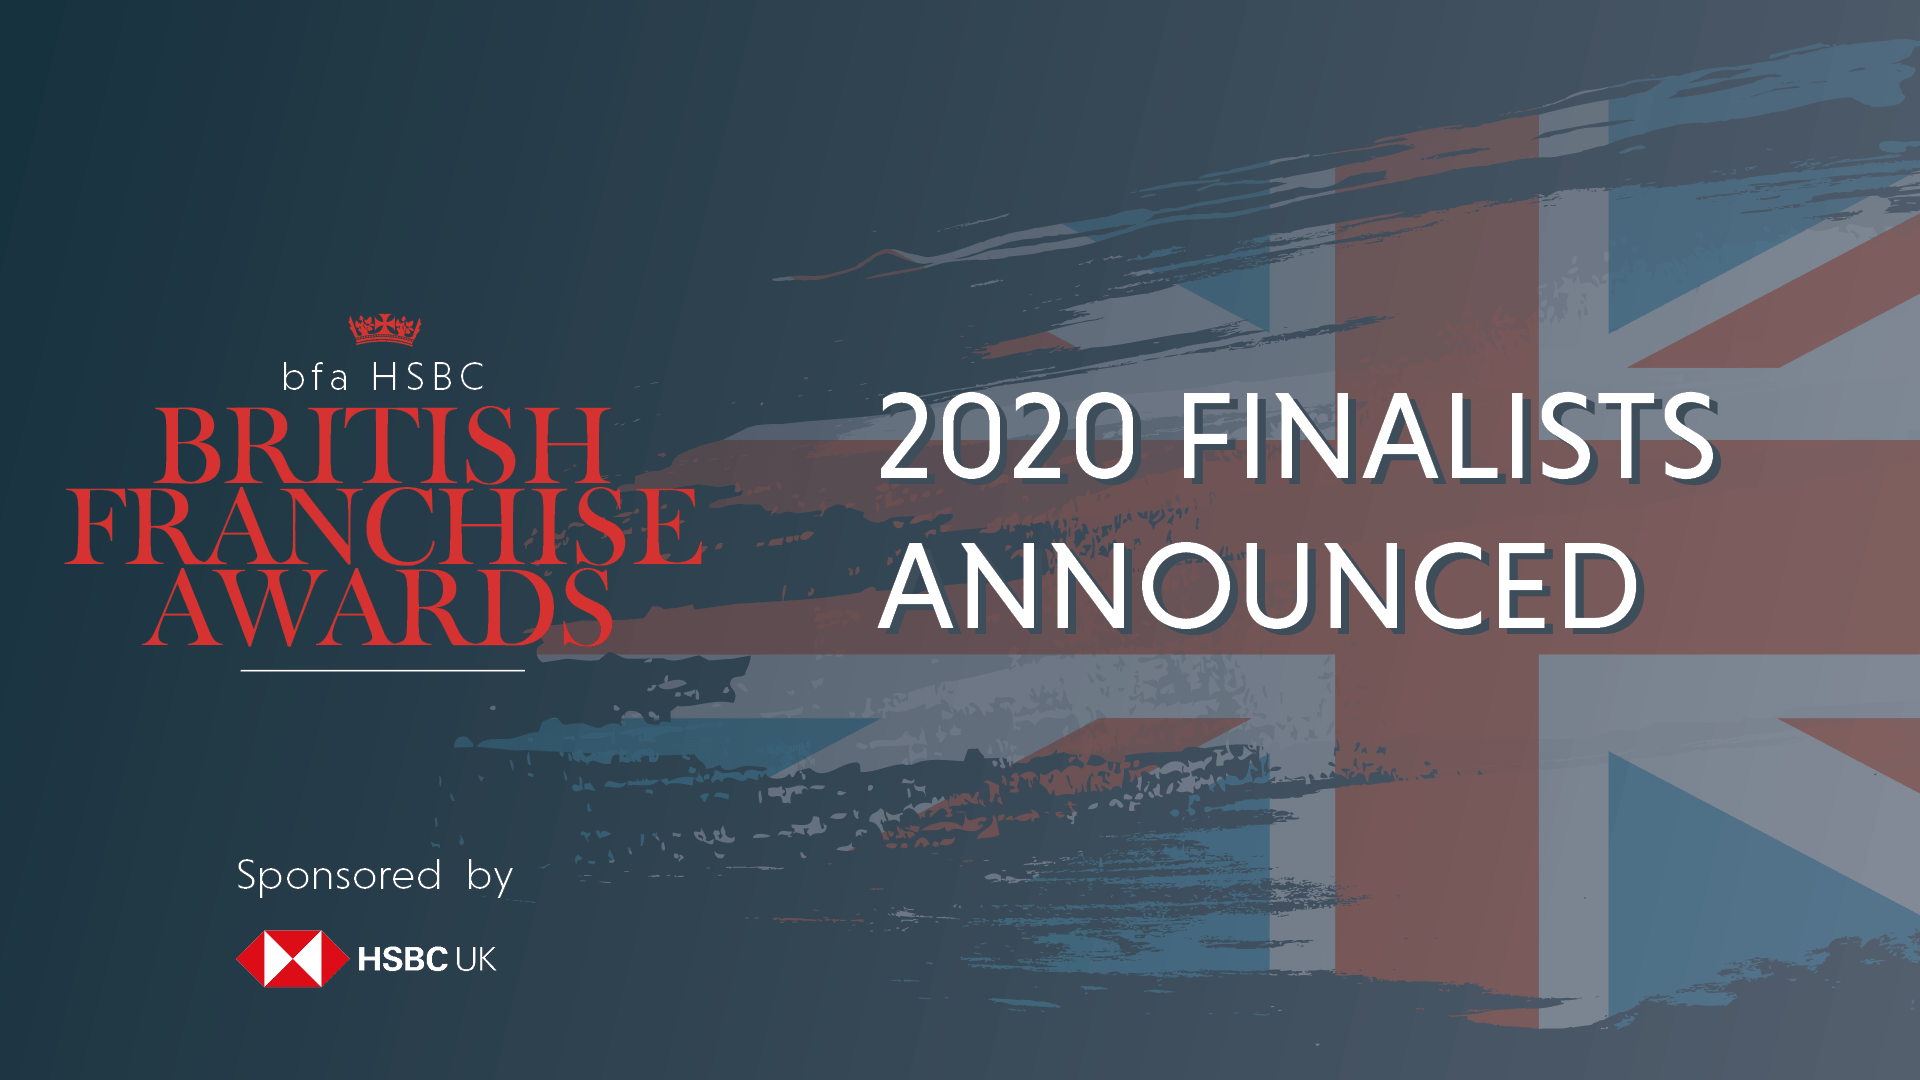 Finalists for bfa HSBC British Franchise Awards 2020 have been announced